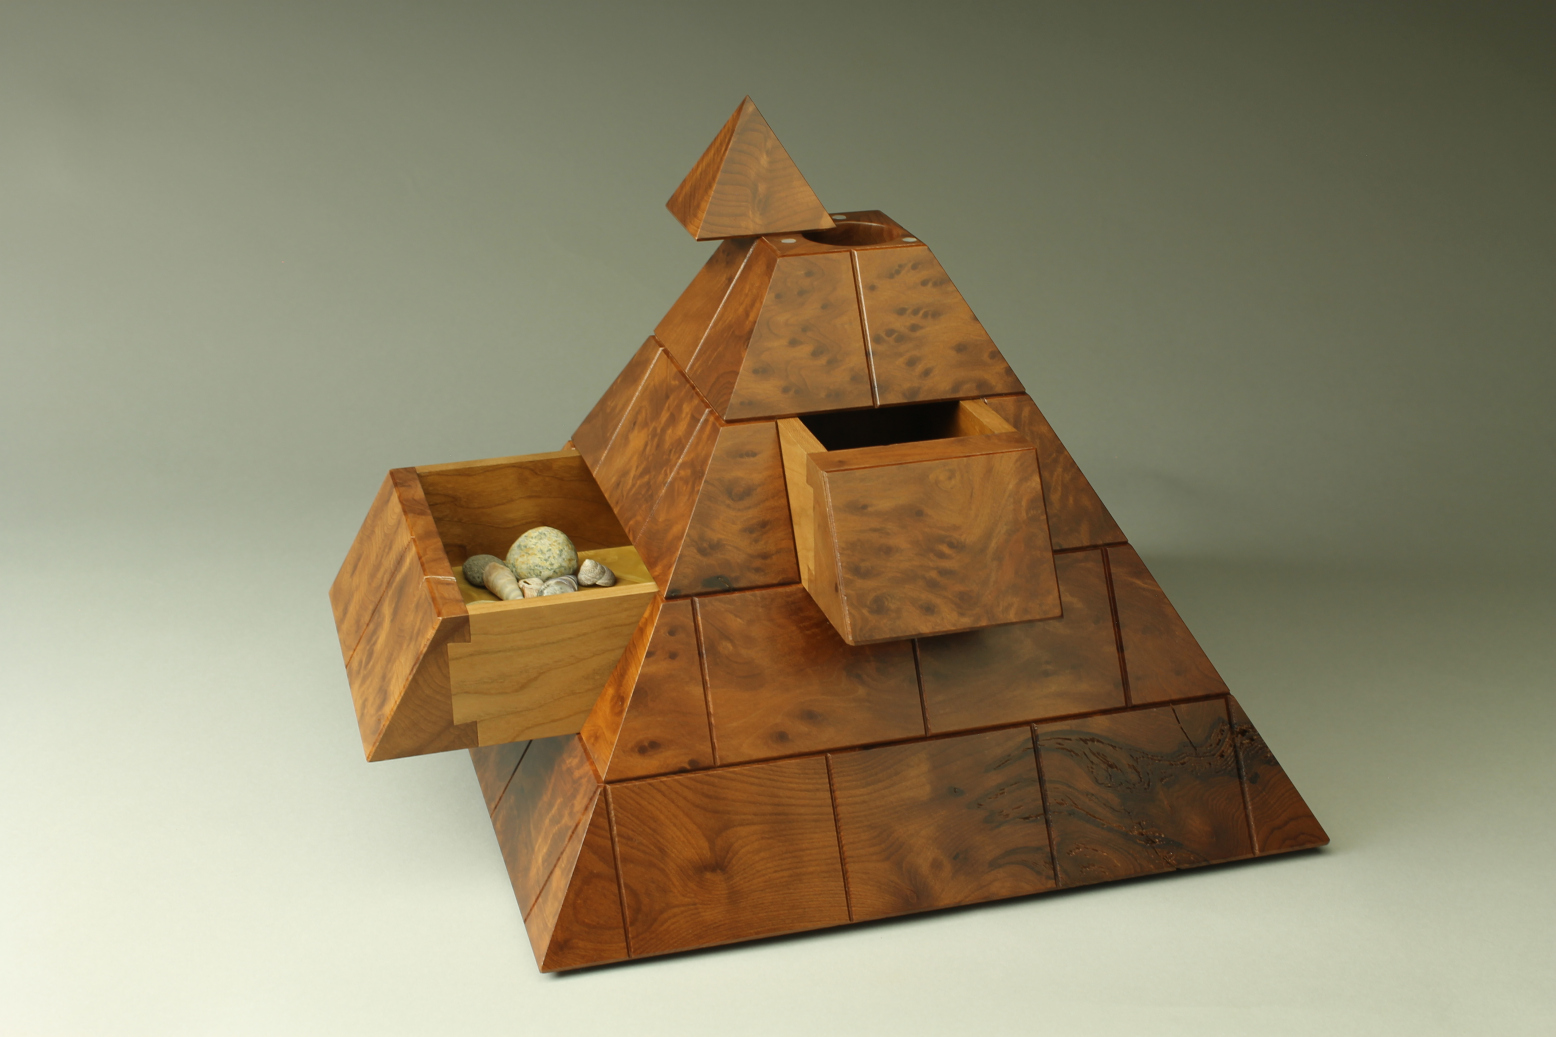 burl cherry pyramid box custom handmade wooden heirloom